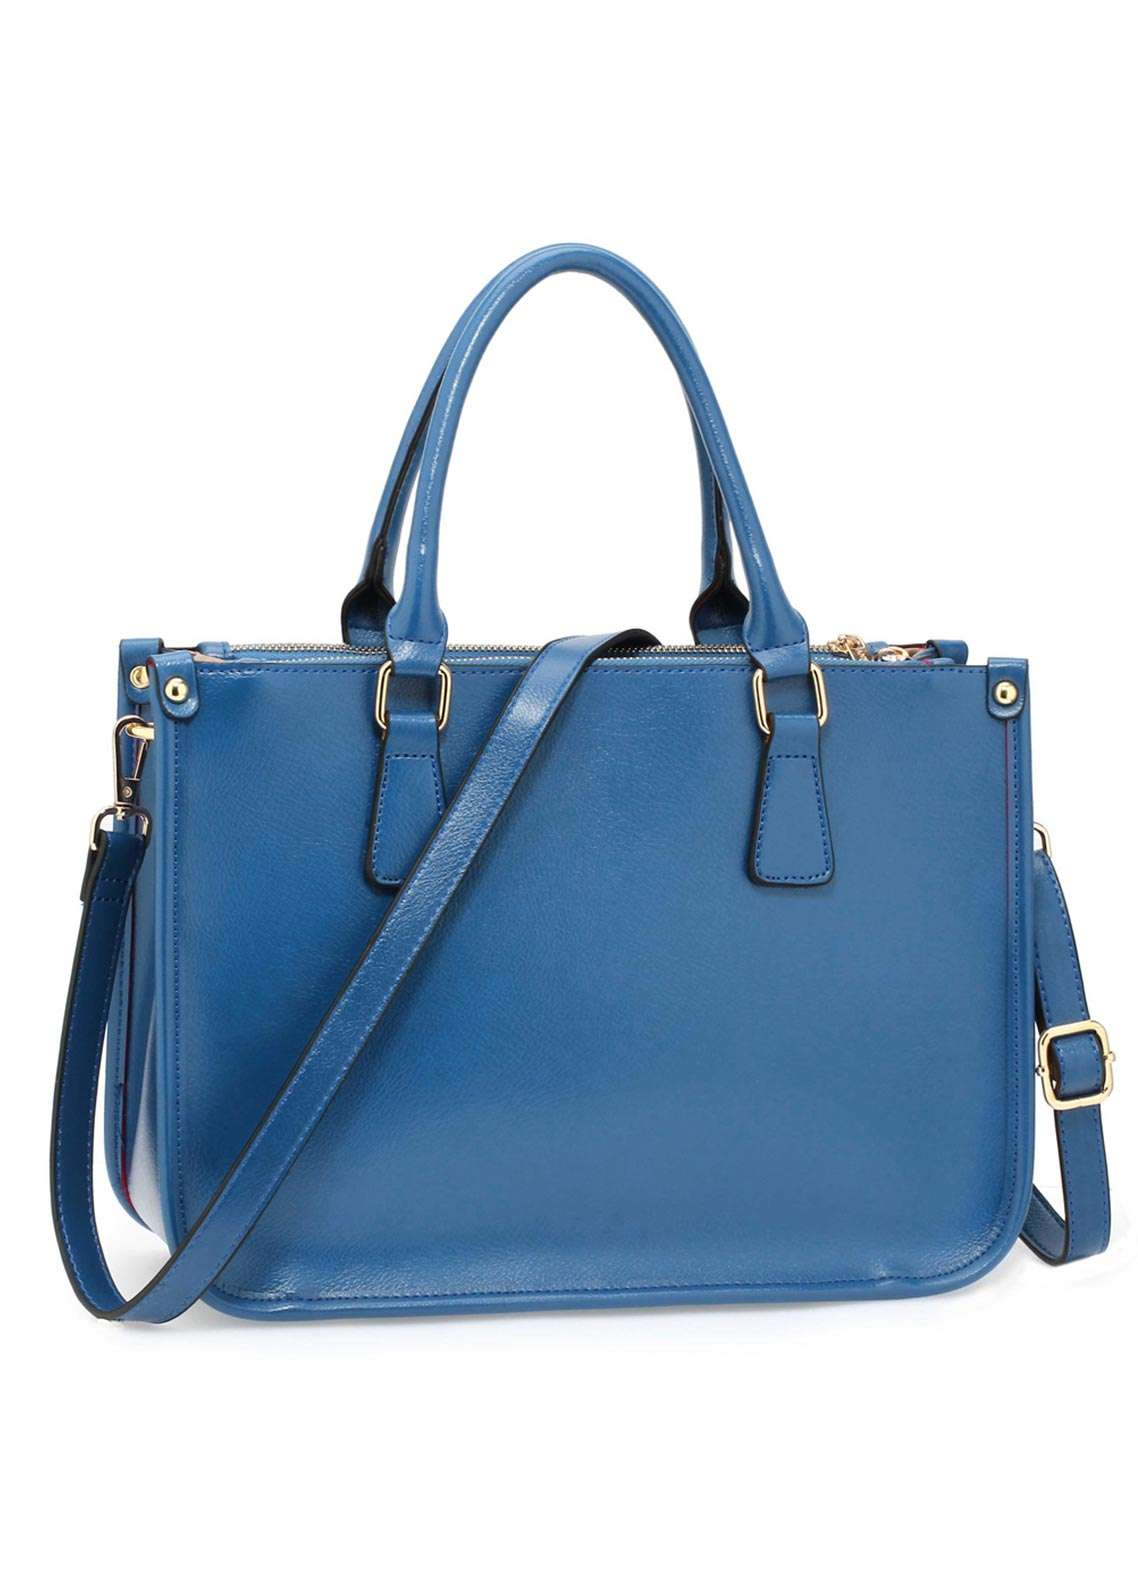 Anna Grace London Faux Leather Tote  Bags  for Women  Blue with Smooth Texture